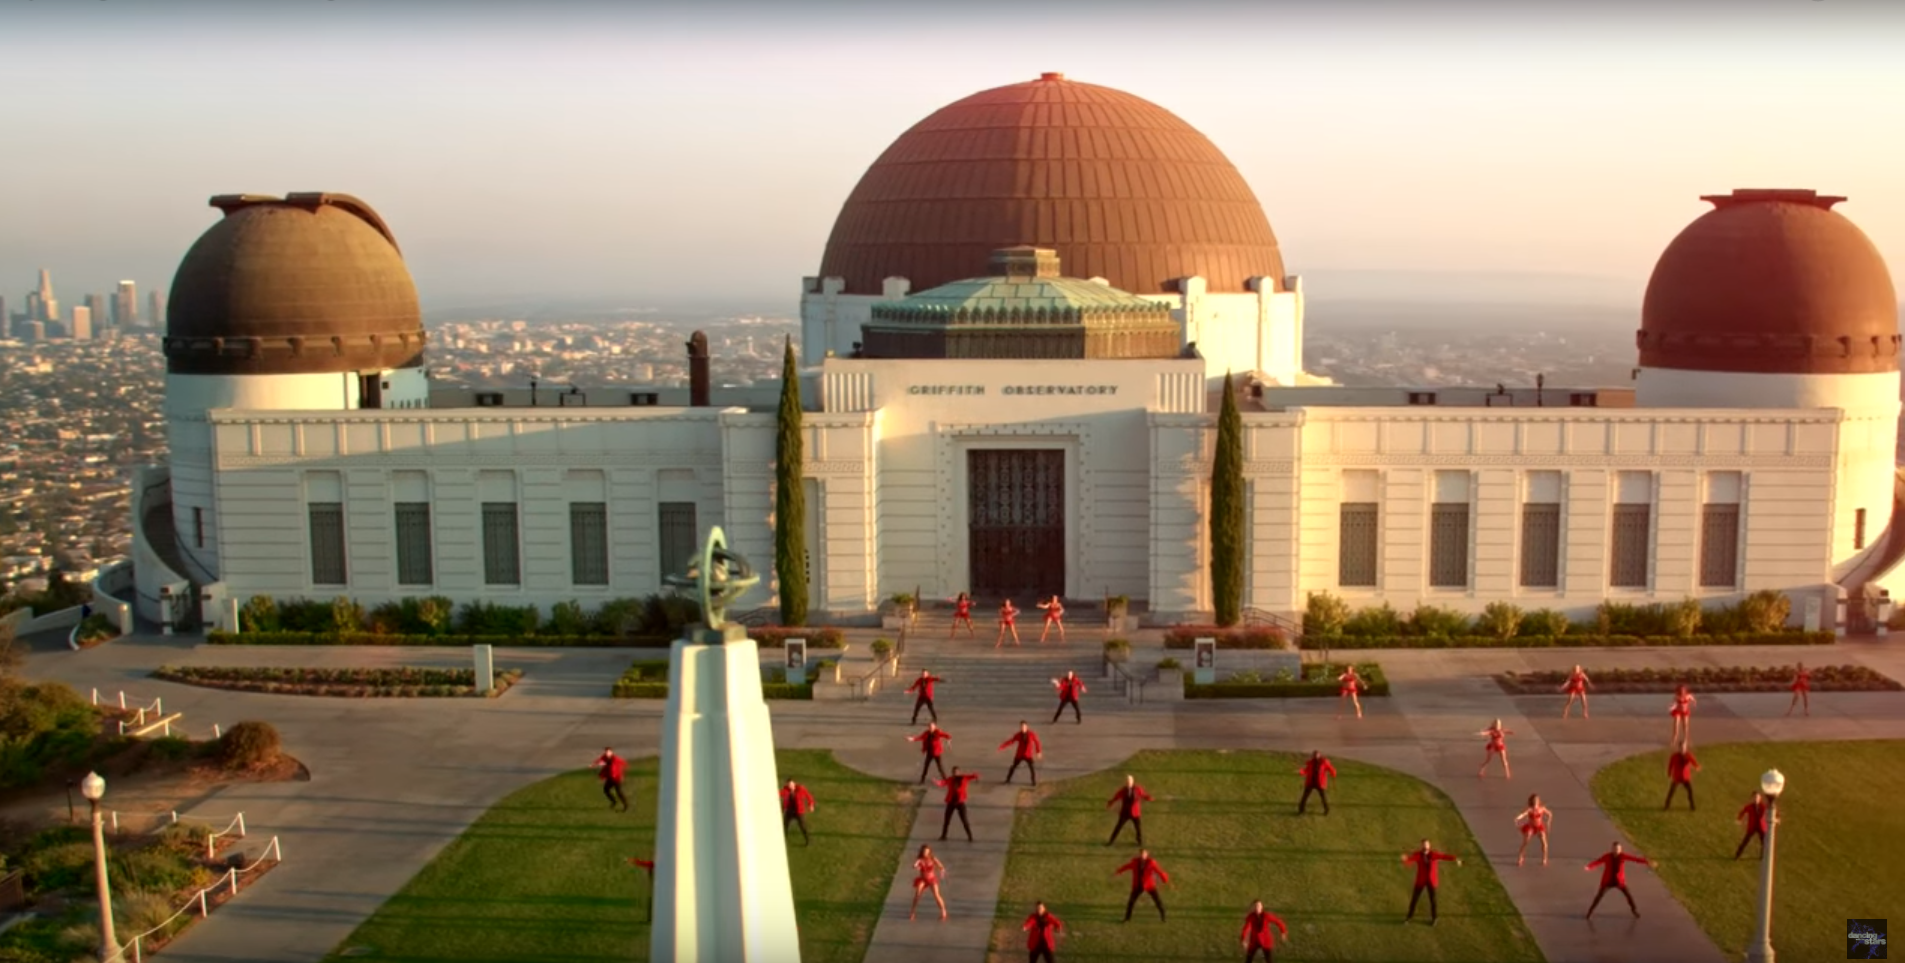 This Dancing with the Stars drone footage is seriously epic